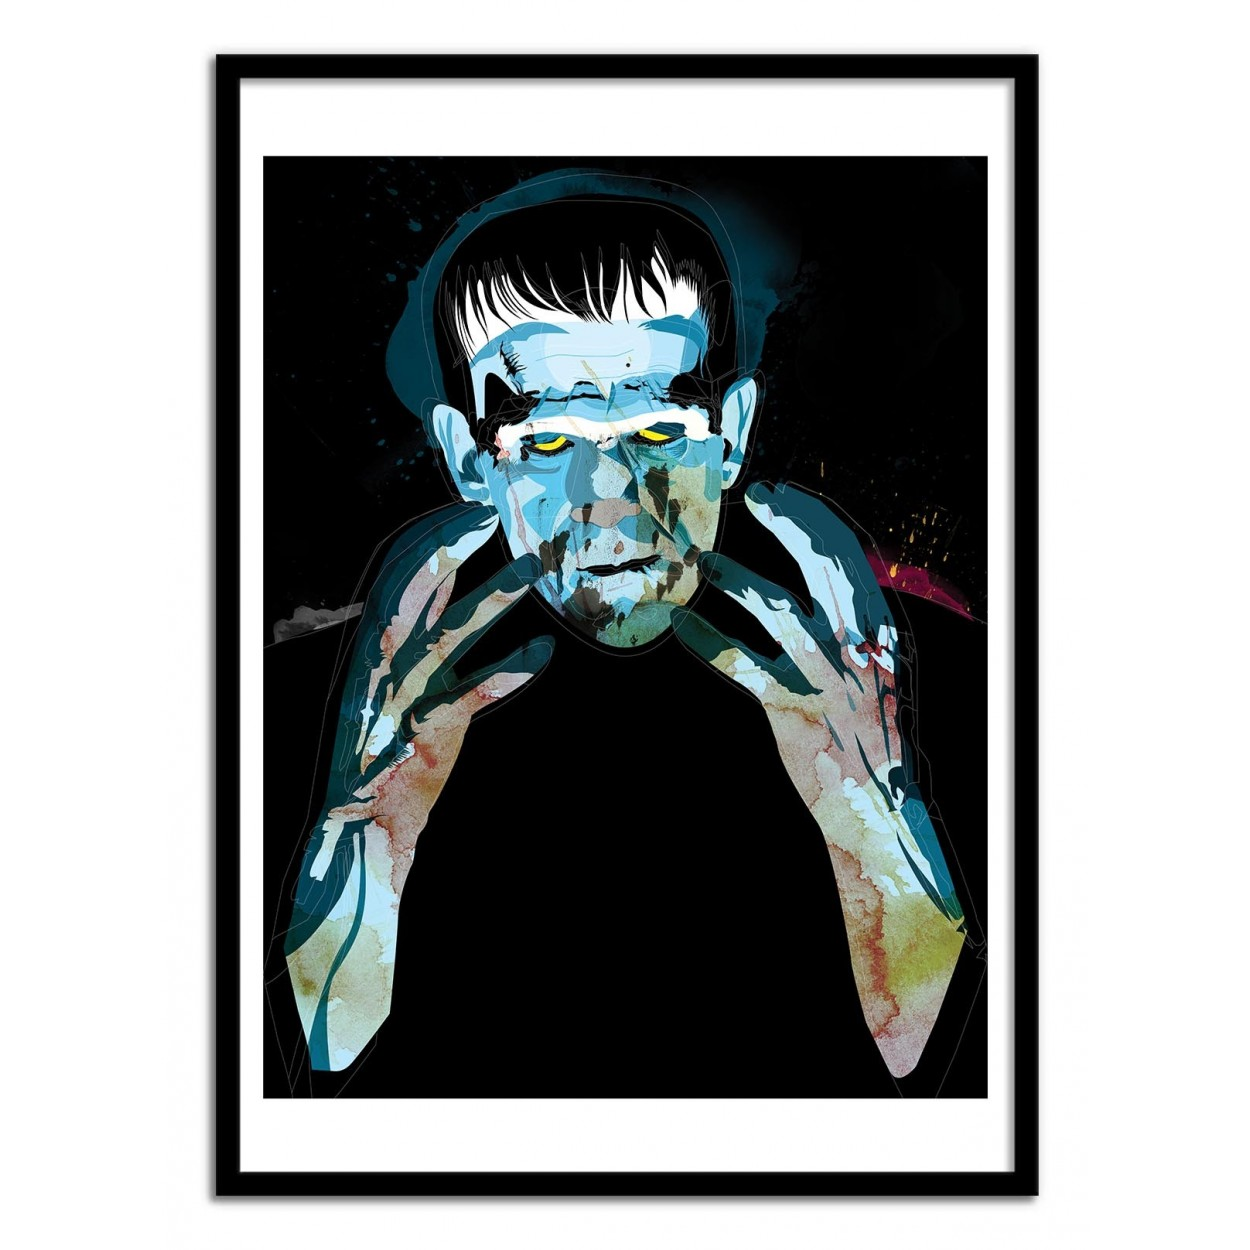 illustration art poster frame paint graphic portrait frankenstein. Black Bedroom Furniture Sets. Home Design Ideas